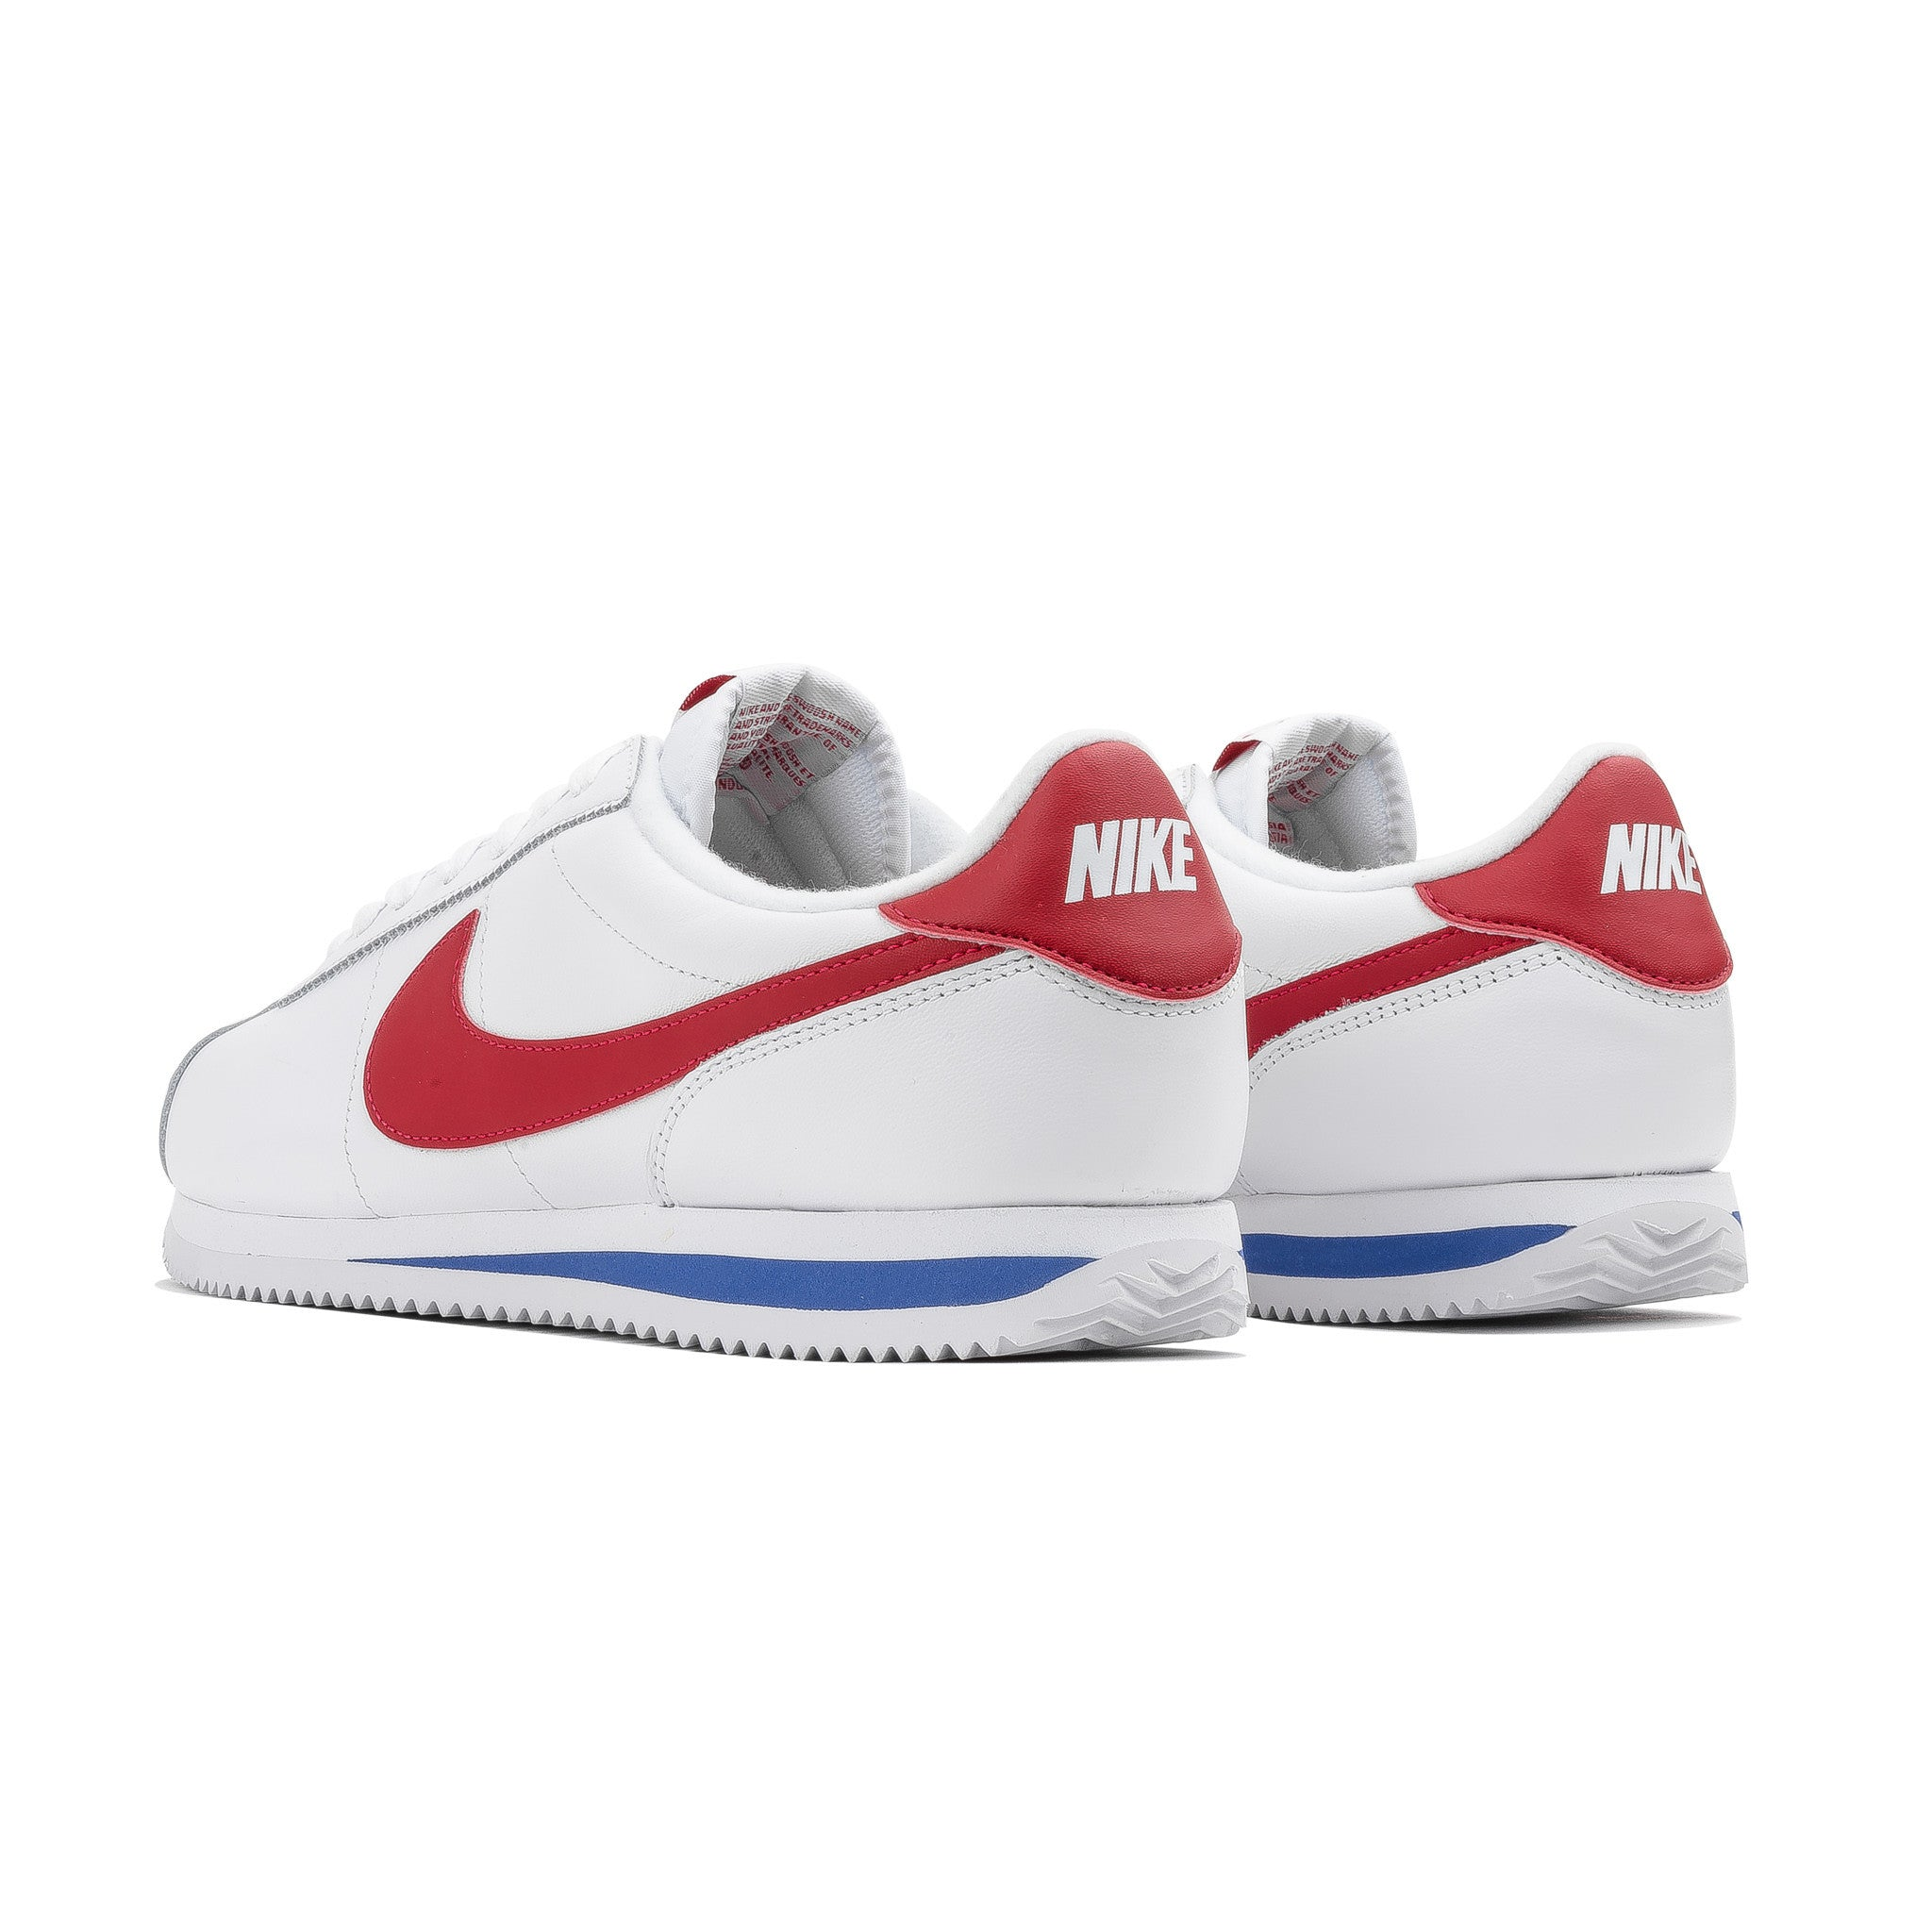 Nike Cortez Basic Leather OG 882254-164 White